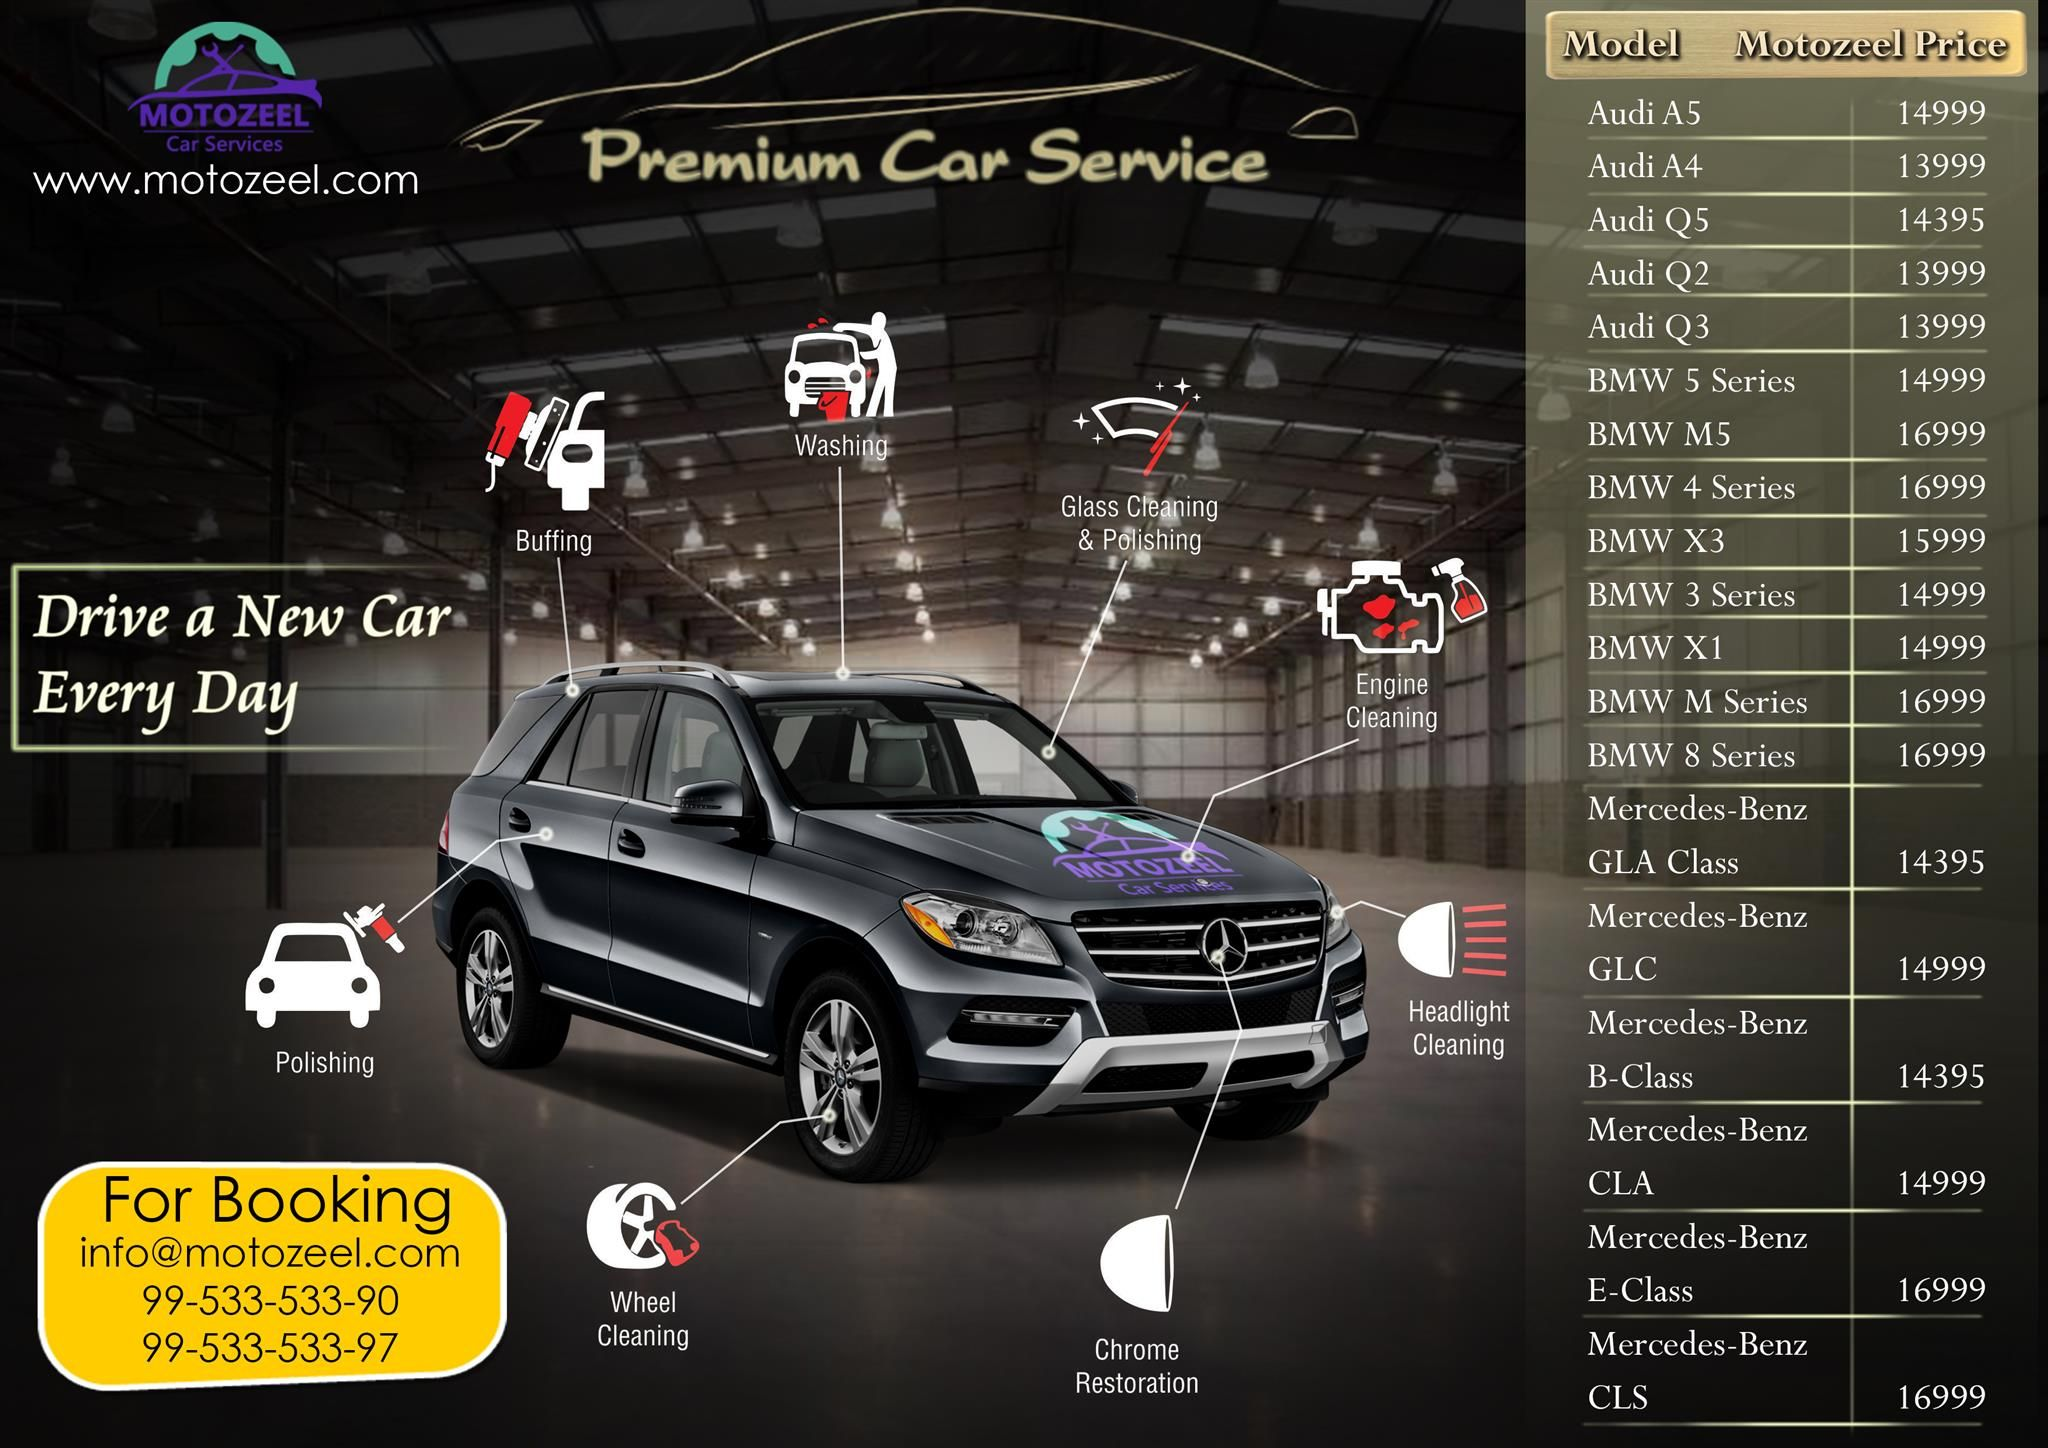 Drive a New Car Everyday.. Check Out Premium Car Services